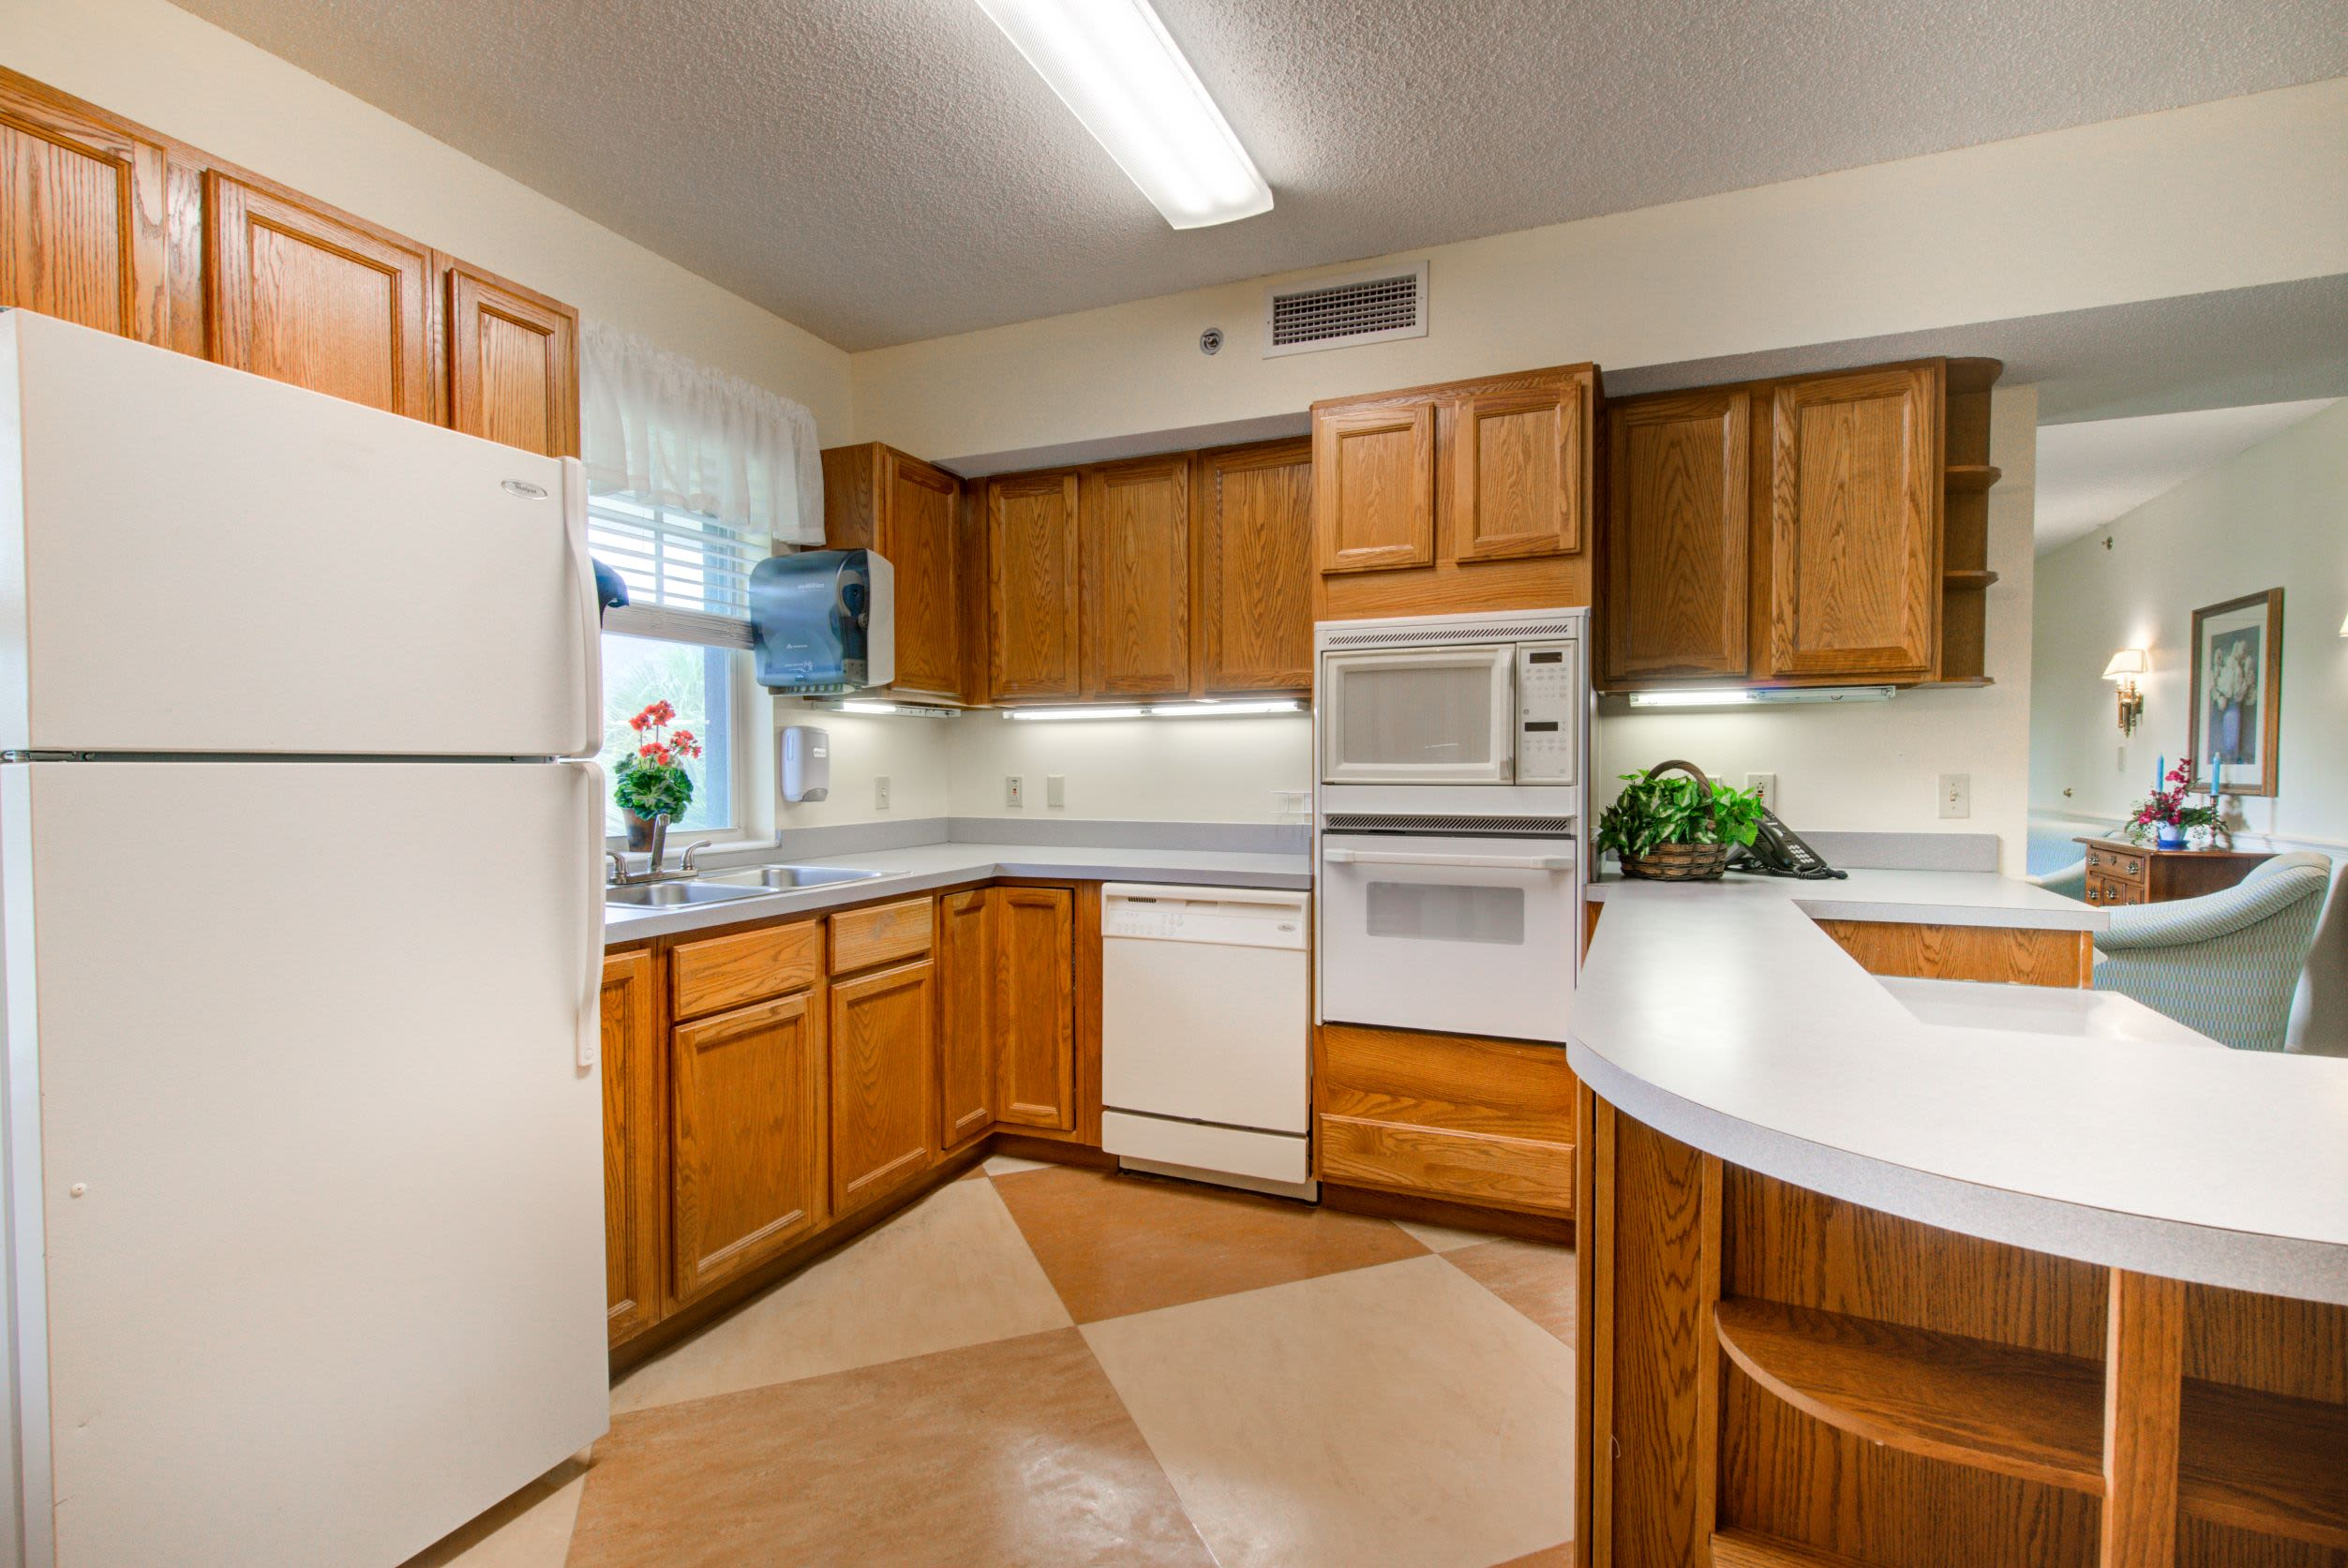 An apartment kitchen at Truewood by Merrill, Charlotte Center in Port Charlotte, Florida